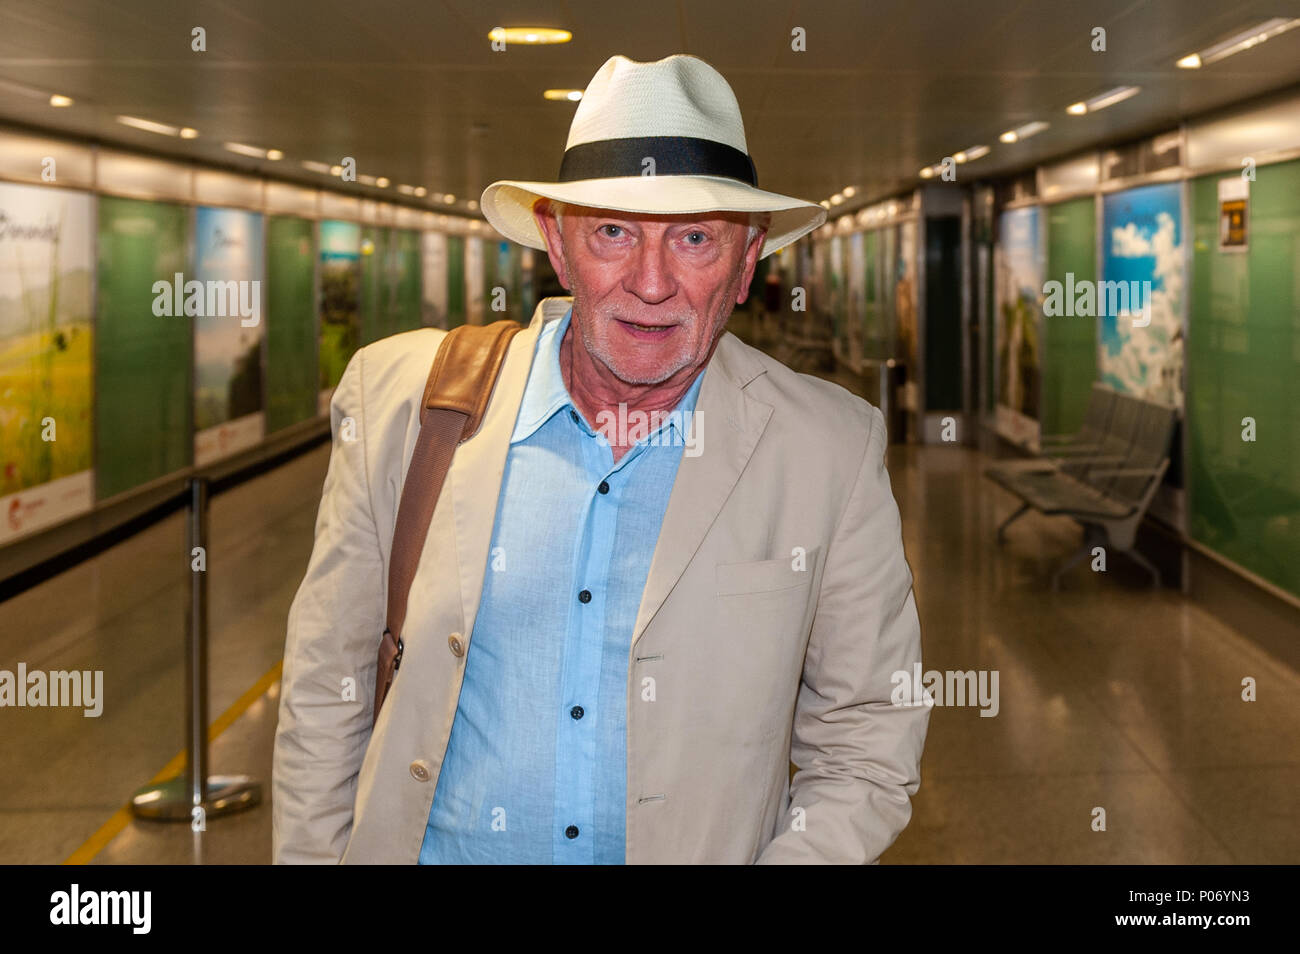 malaga-spain-8th-june-2018-irish-musician-songwriter-and-record-producer-phil-coulter-is-pictured-at-malaga-airport-after-disembarking-a-flight-from-cork-ireland-credit-andy-gibsonalamy-live-news-P06YN3.jpg